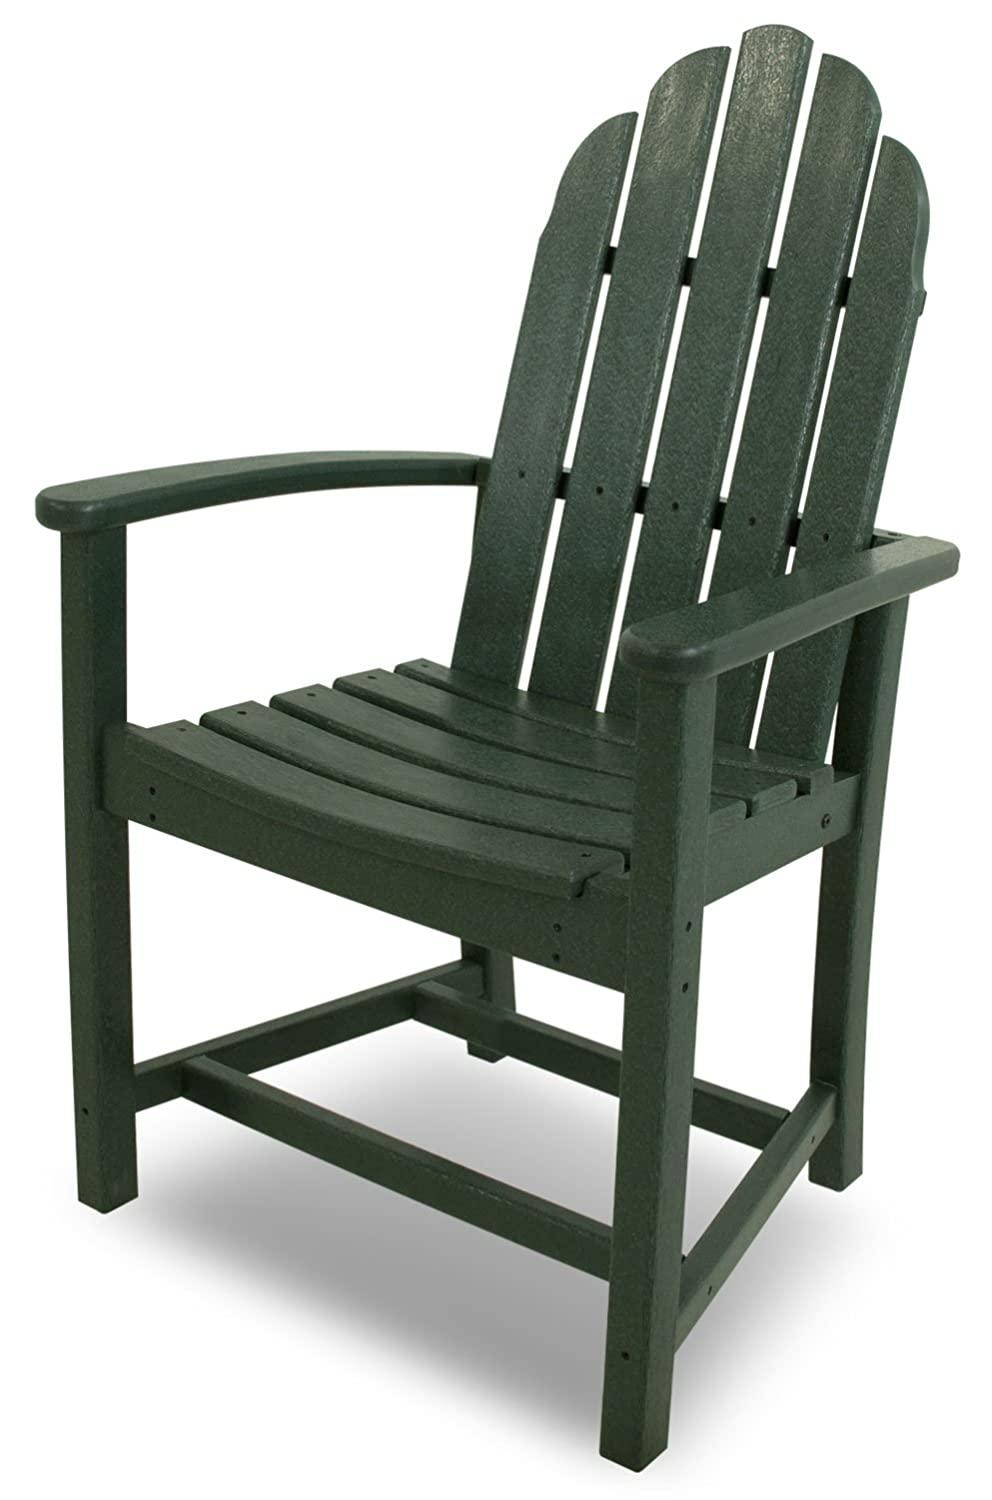 POLYWOOD ADD200GR Classic Adirondack Dining Chair, Green